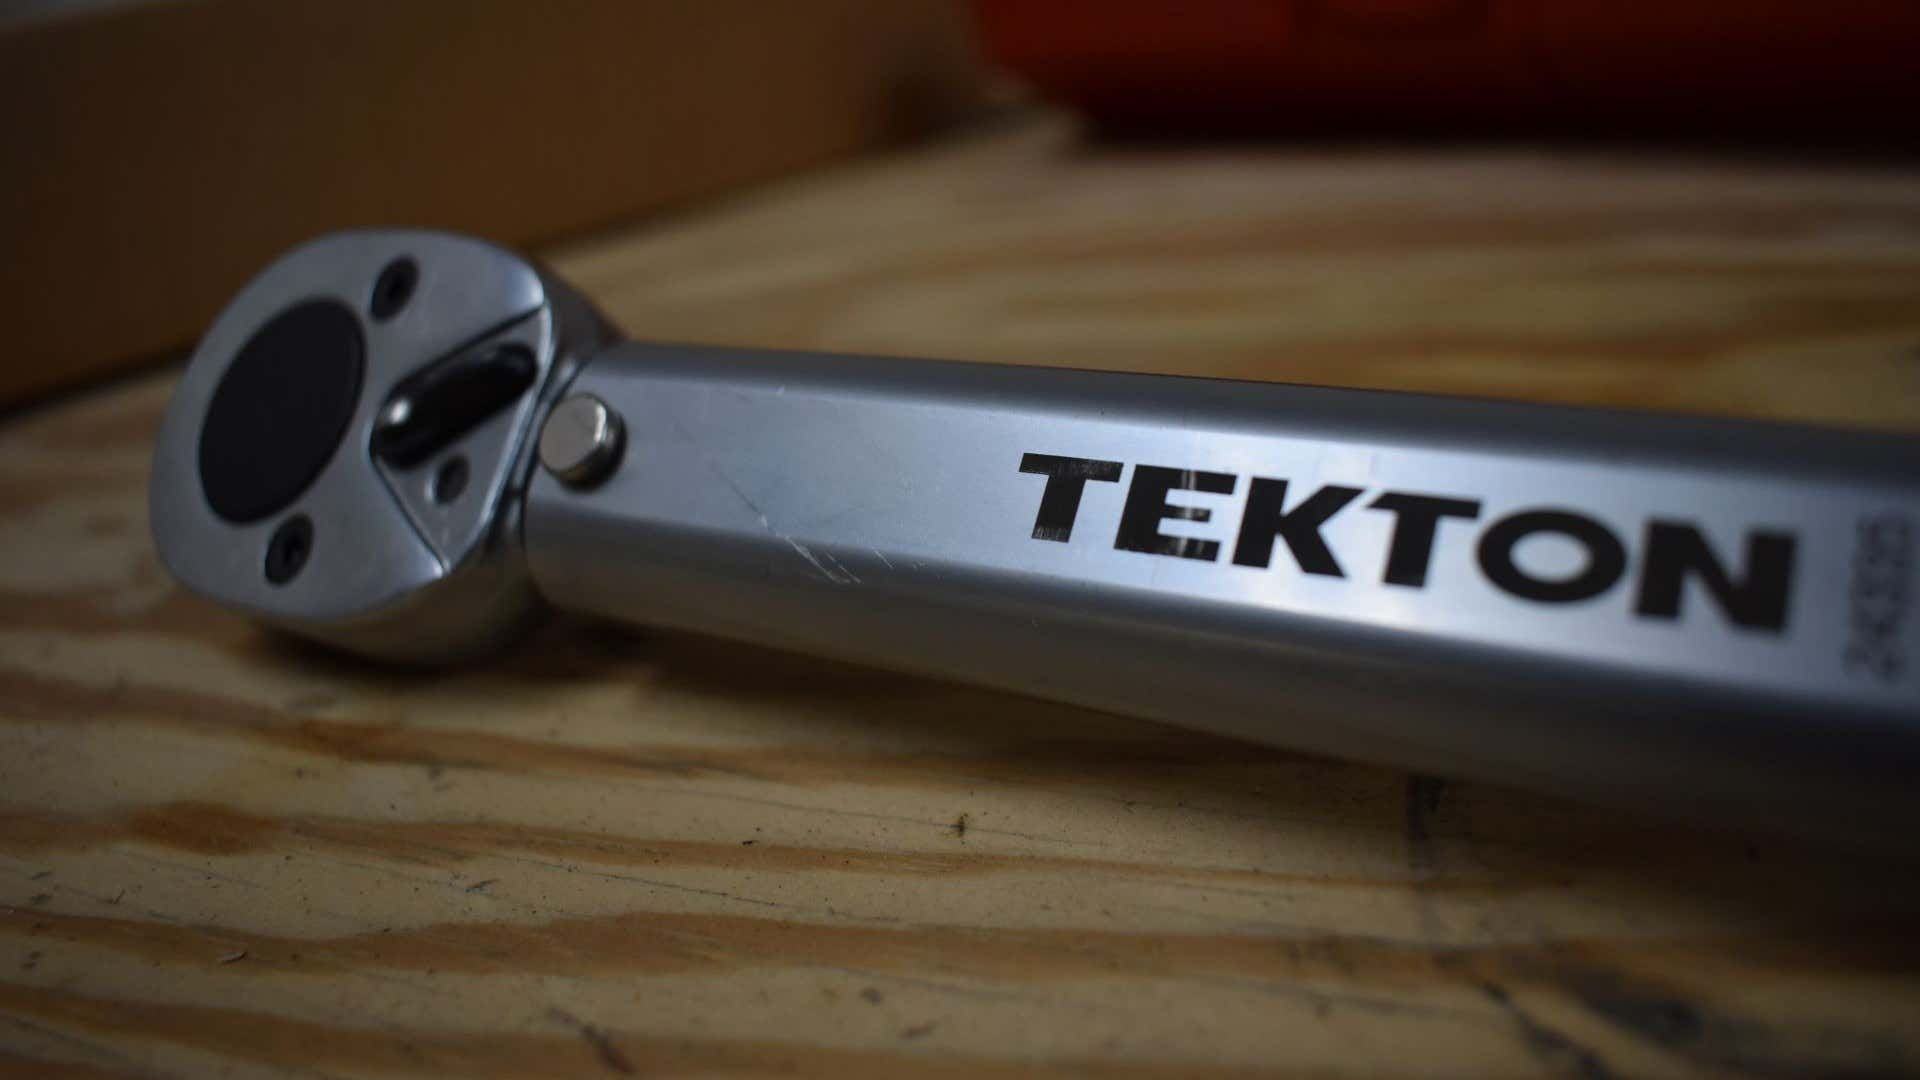 The head of the Tekton torque wrench.